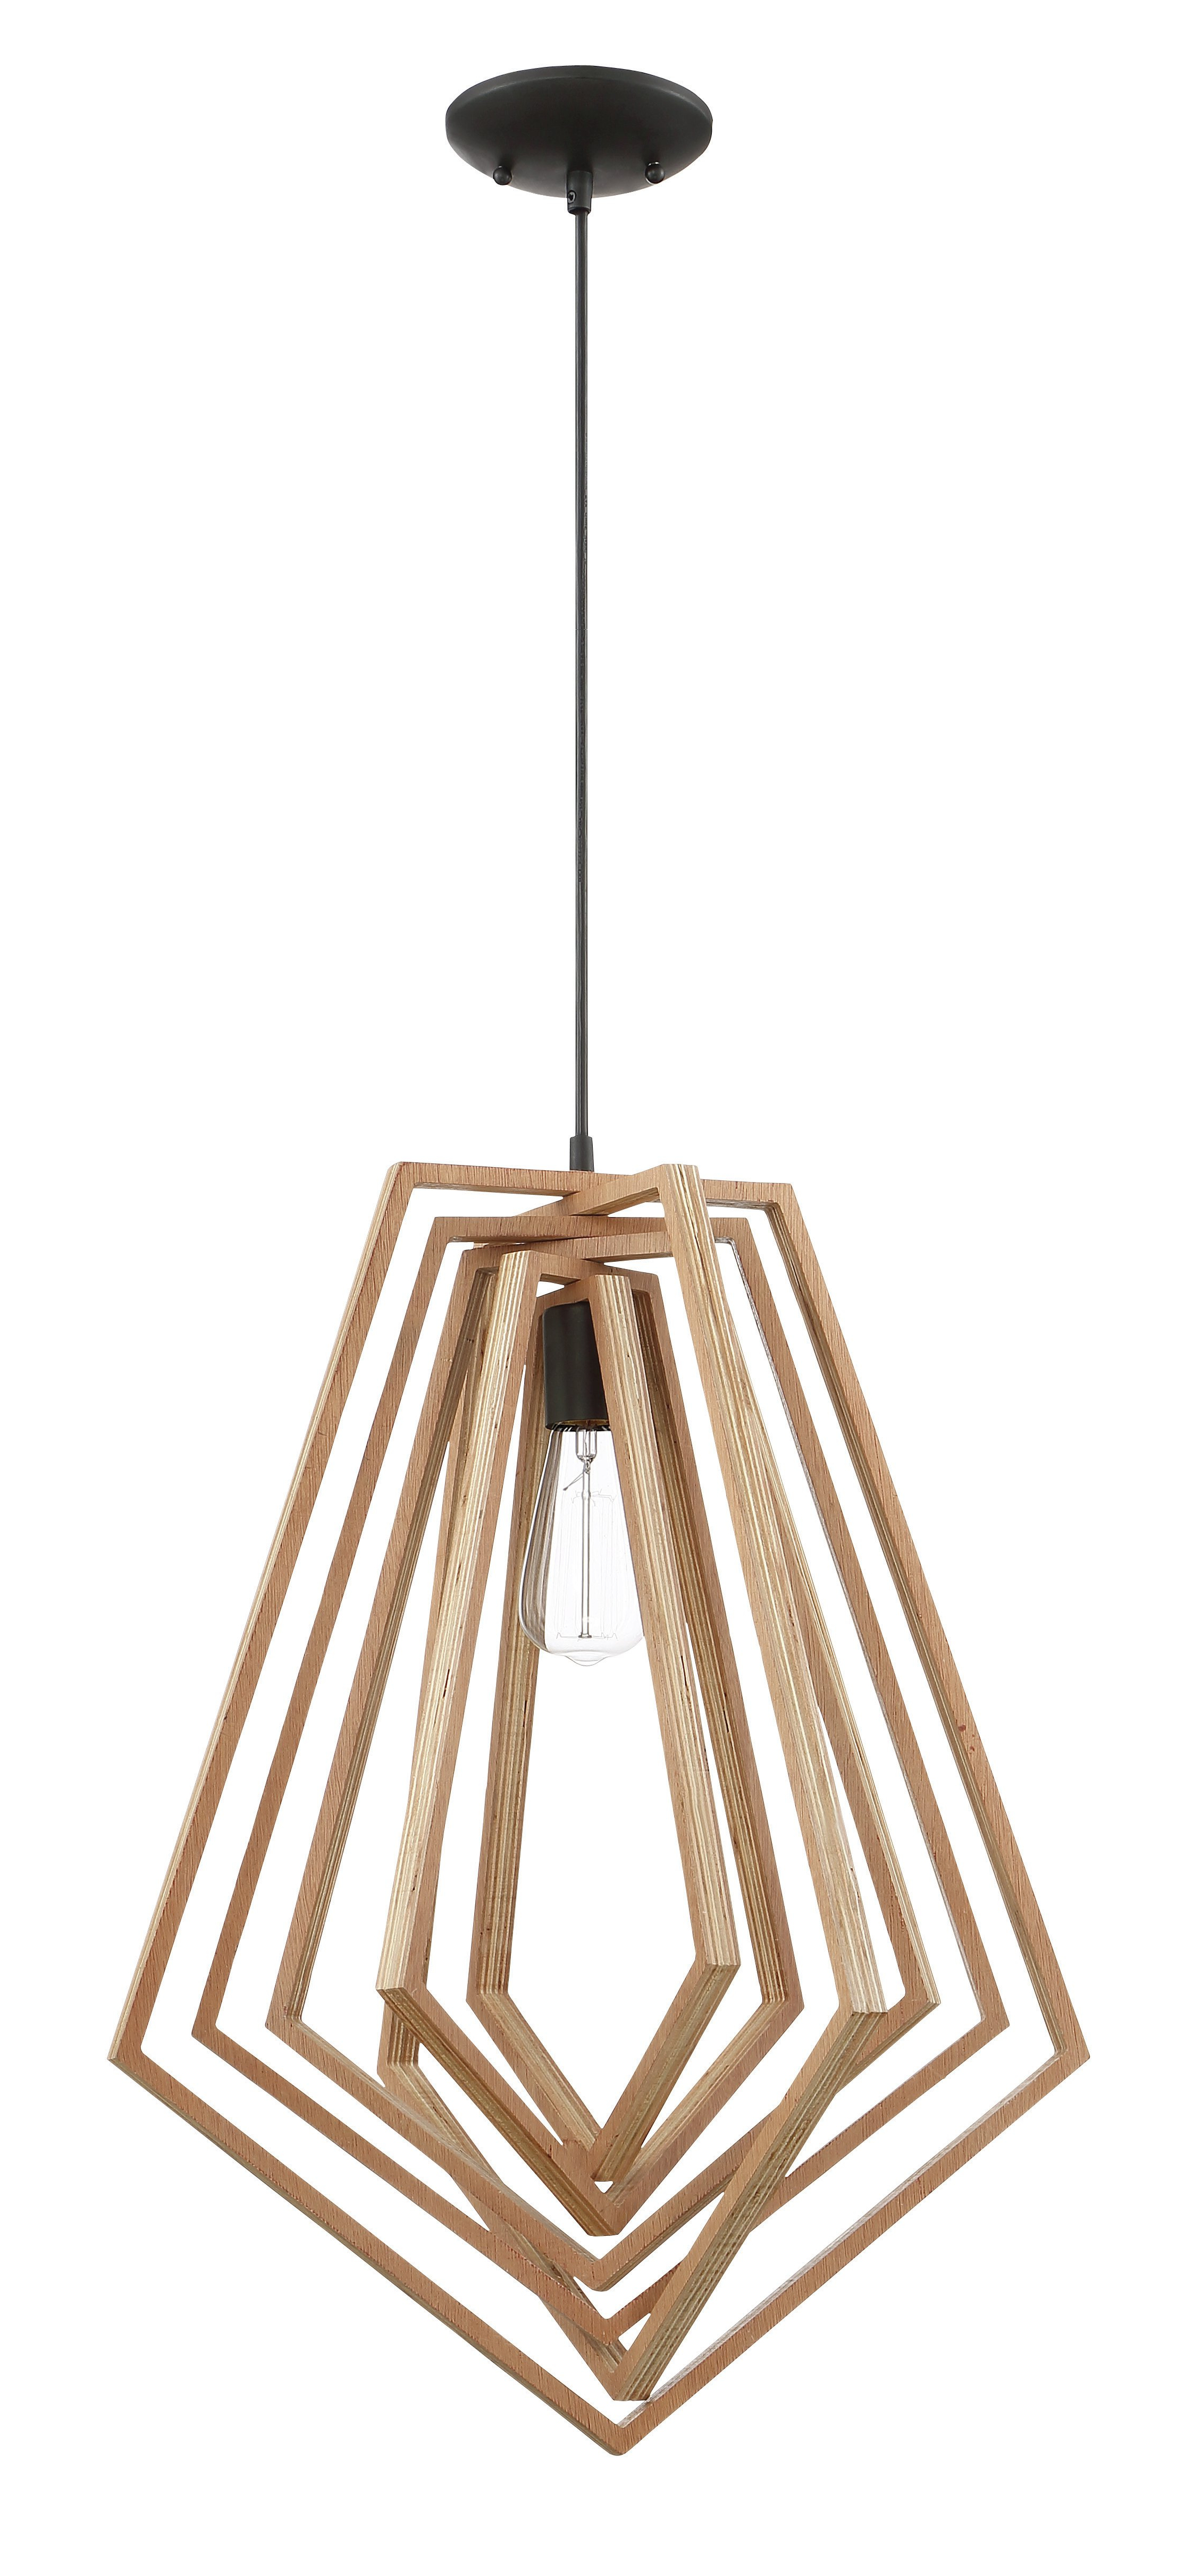 Union Rustic Shelbi 1 Light Geometric Pendant Regarding Preferred Melora 1 Light Single Geometric Pendants (View 21 of 25)